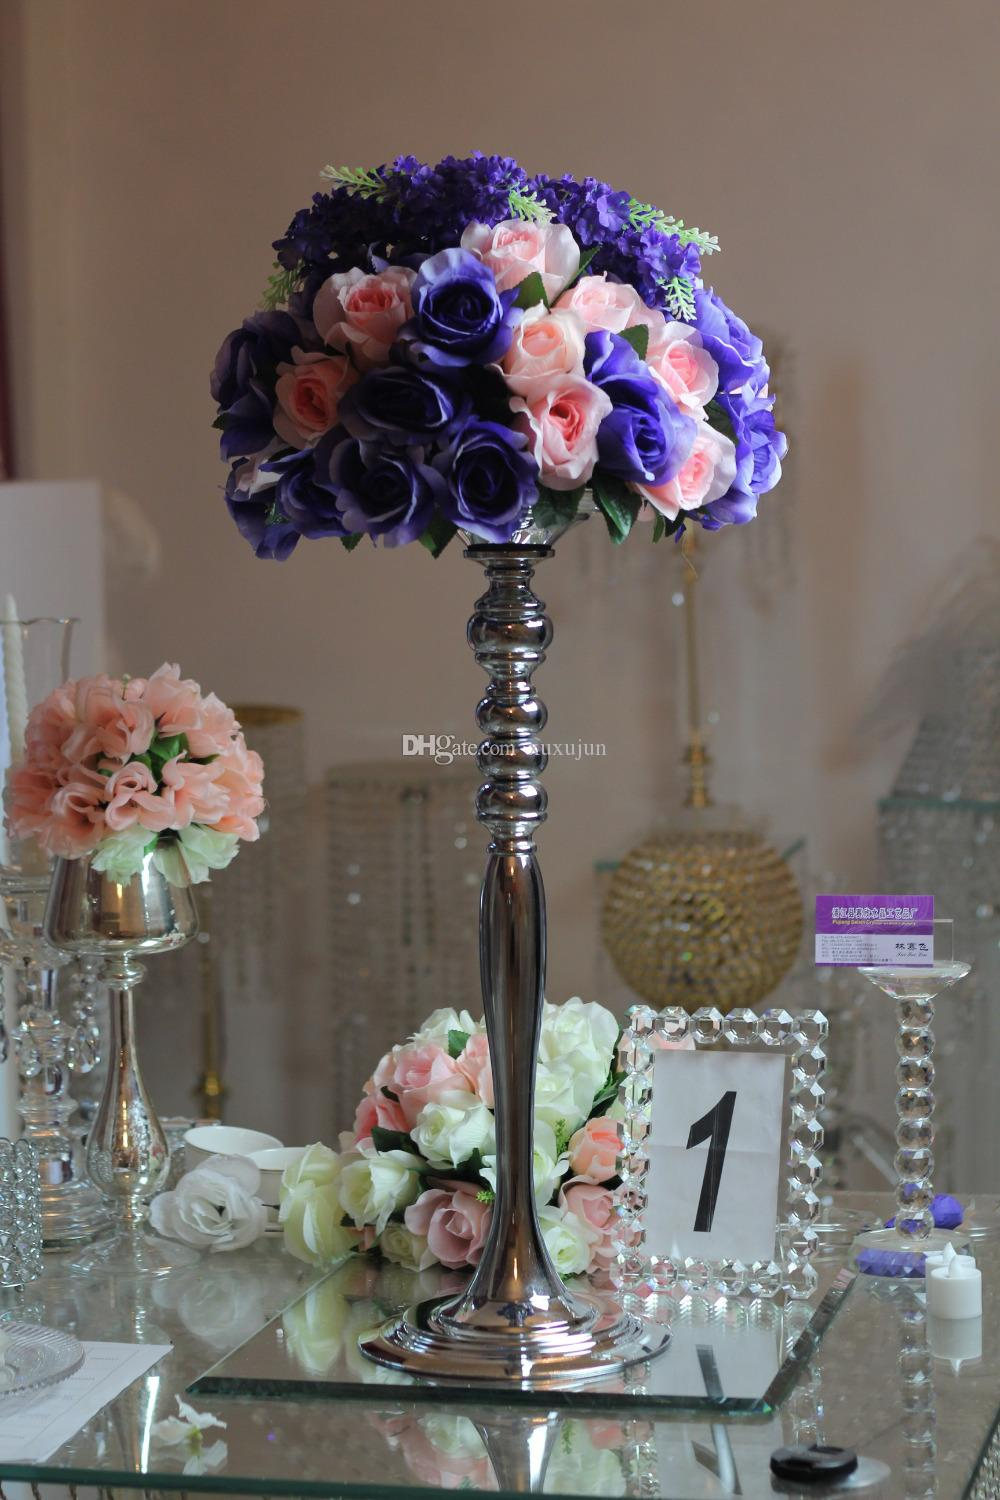 Romantic Flower Standing Centerpiece Candlestick Silver Plated Candle Holder Road Lead Wedding Decoration Birthday Decorations Items Birthday Decorations Online From Xuxujun 462 32 Dhgate Com